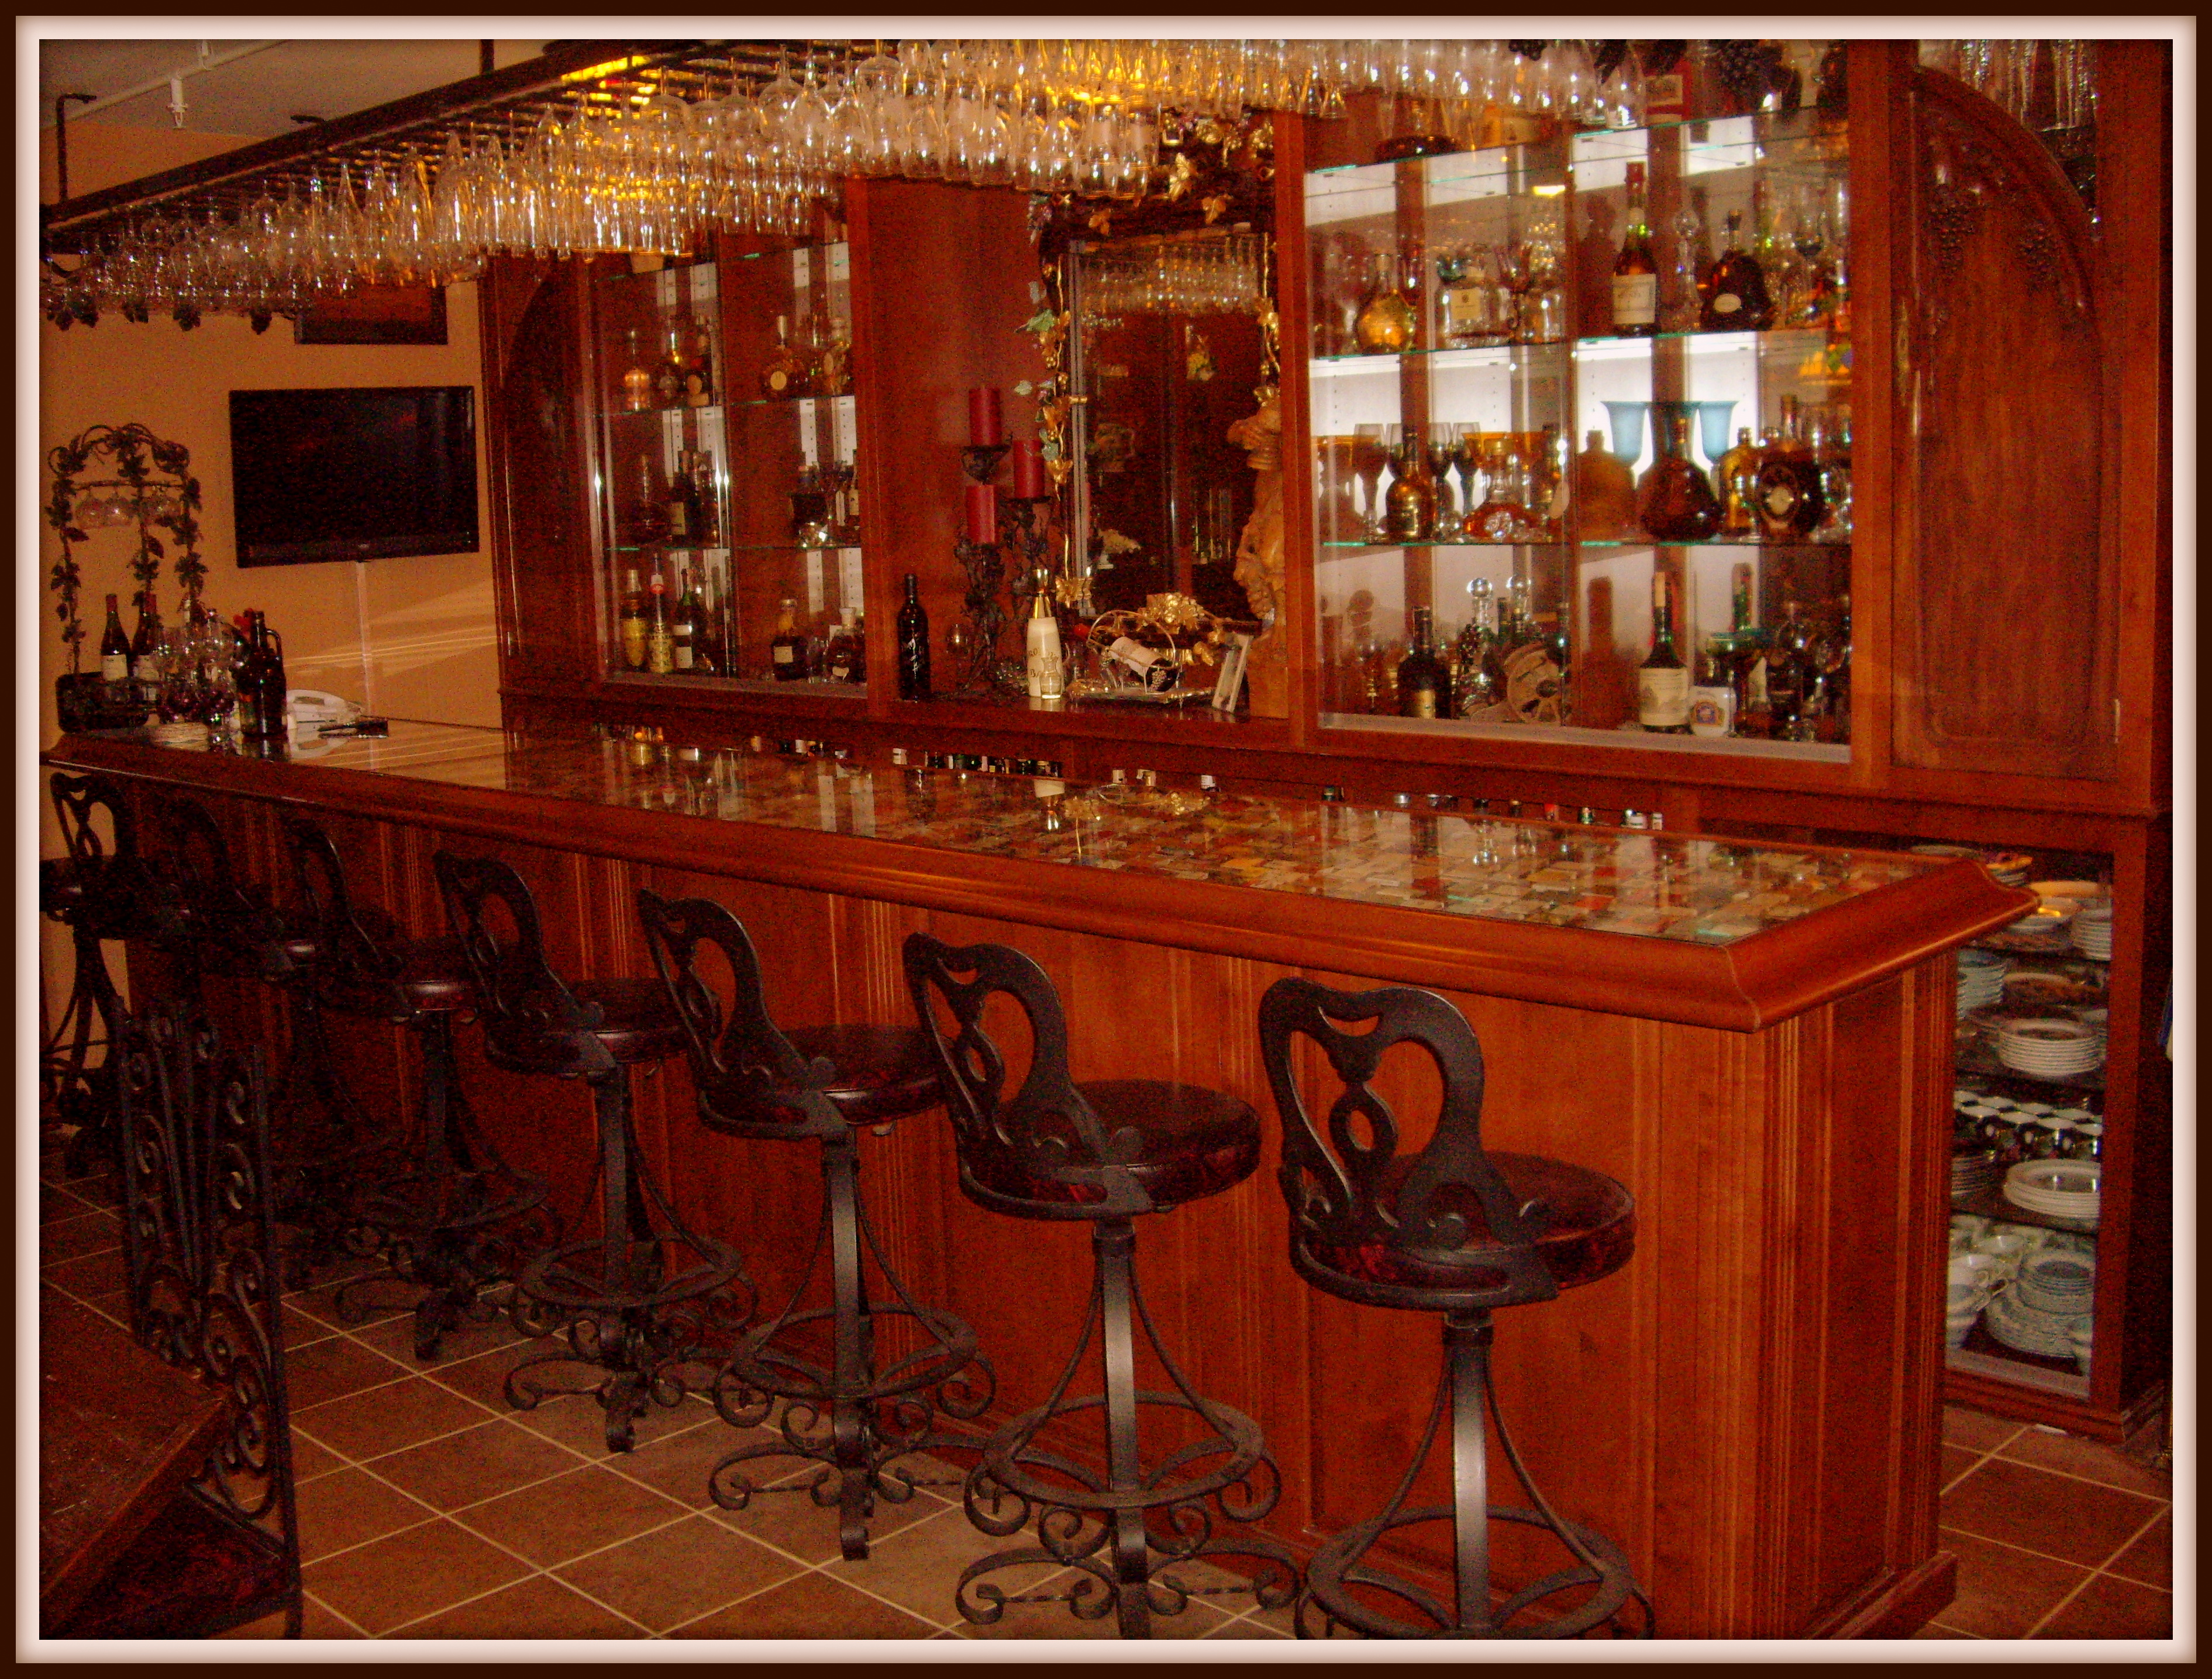 This Exquisite Custom Bar And Bar Room Has Been Featured In